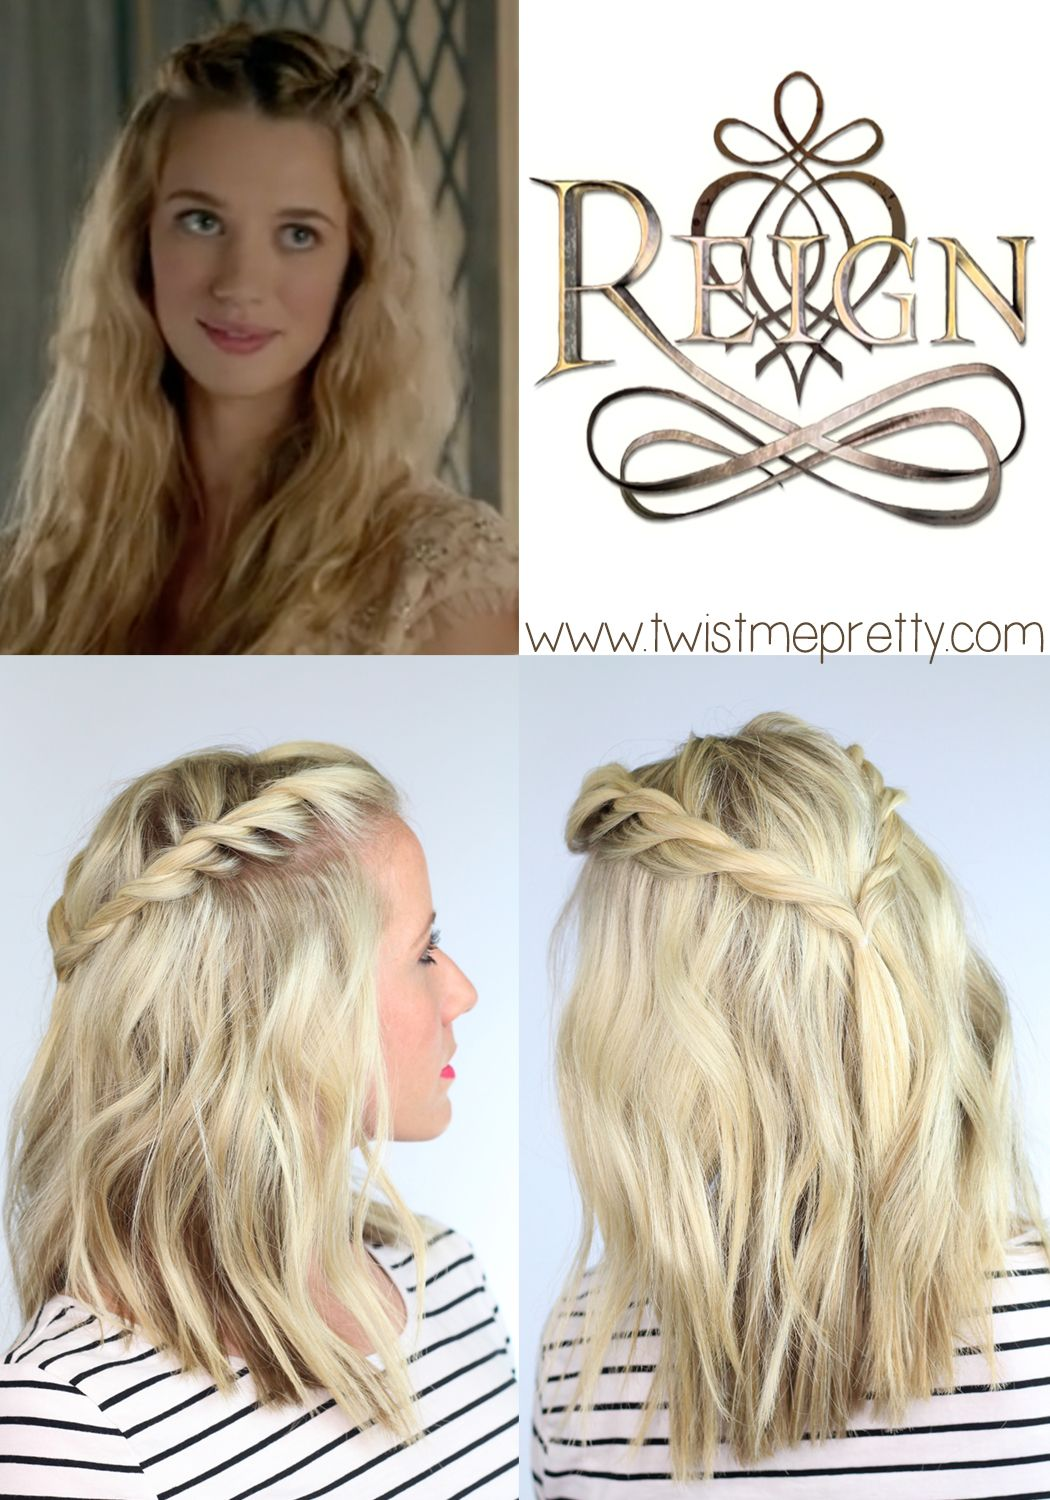 Twisted Reign Hairstyle Twist Me Pretty Reign Hairstyles Hair Styles Bohemian Hairstyles